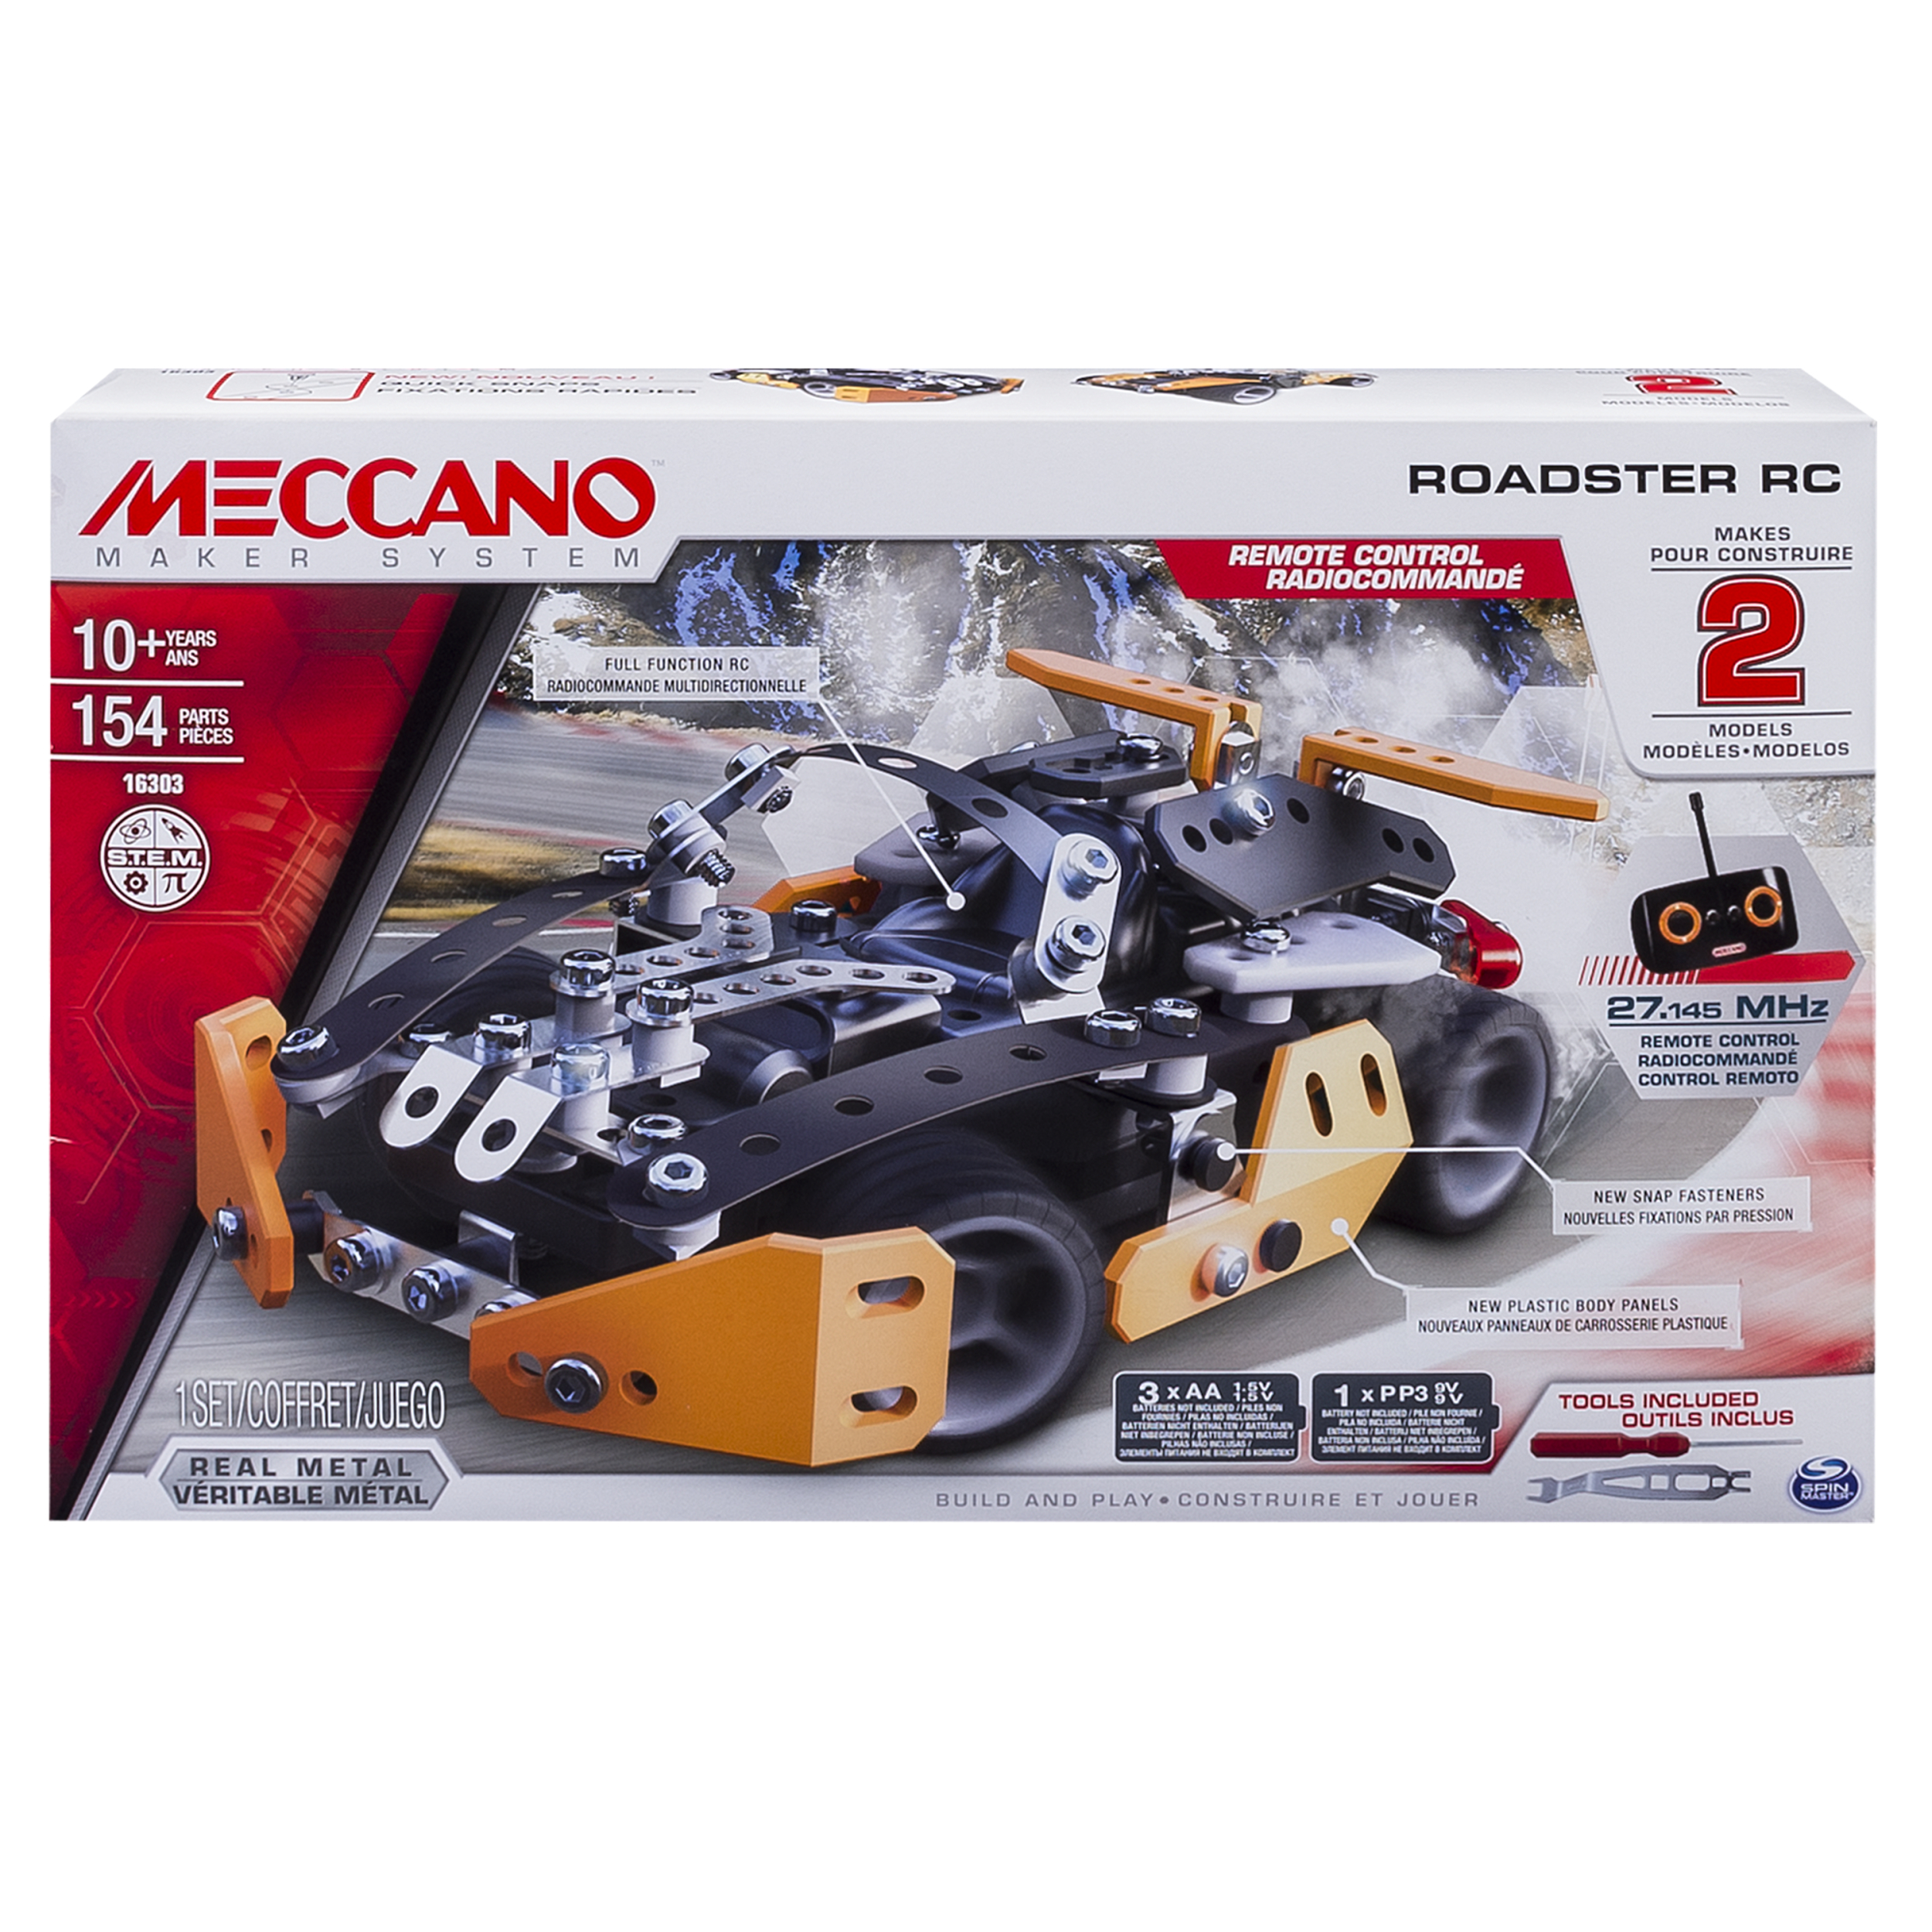 Erector by Meccano Roadster RC Model Building Set, 154 Pieces, For Ages 10 and up, STEM Construction Education Toy